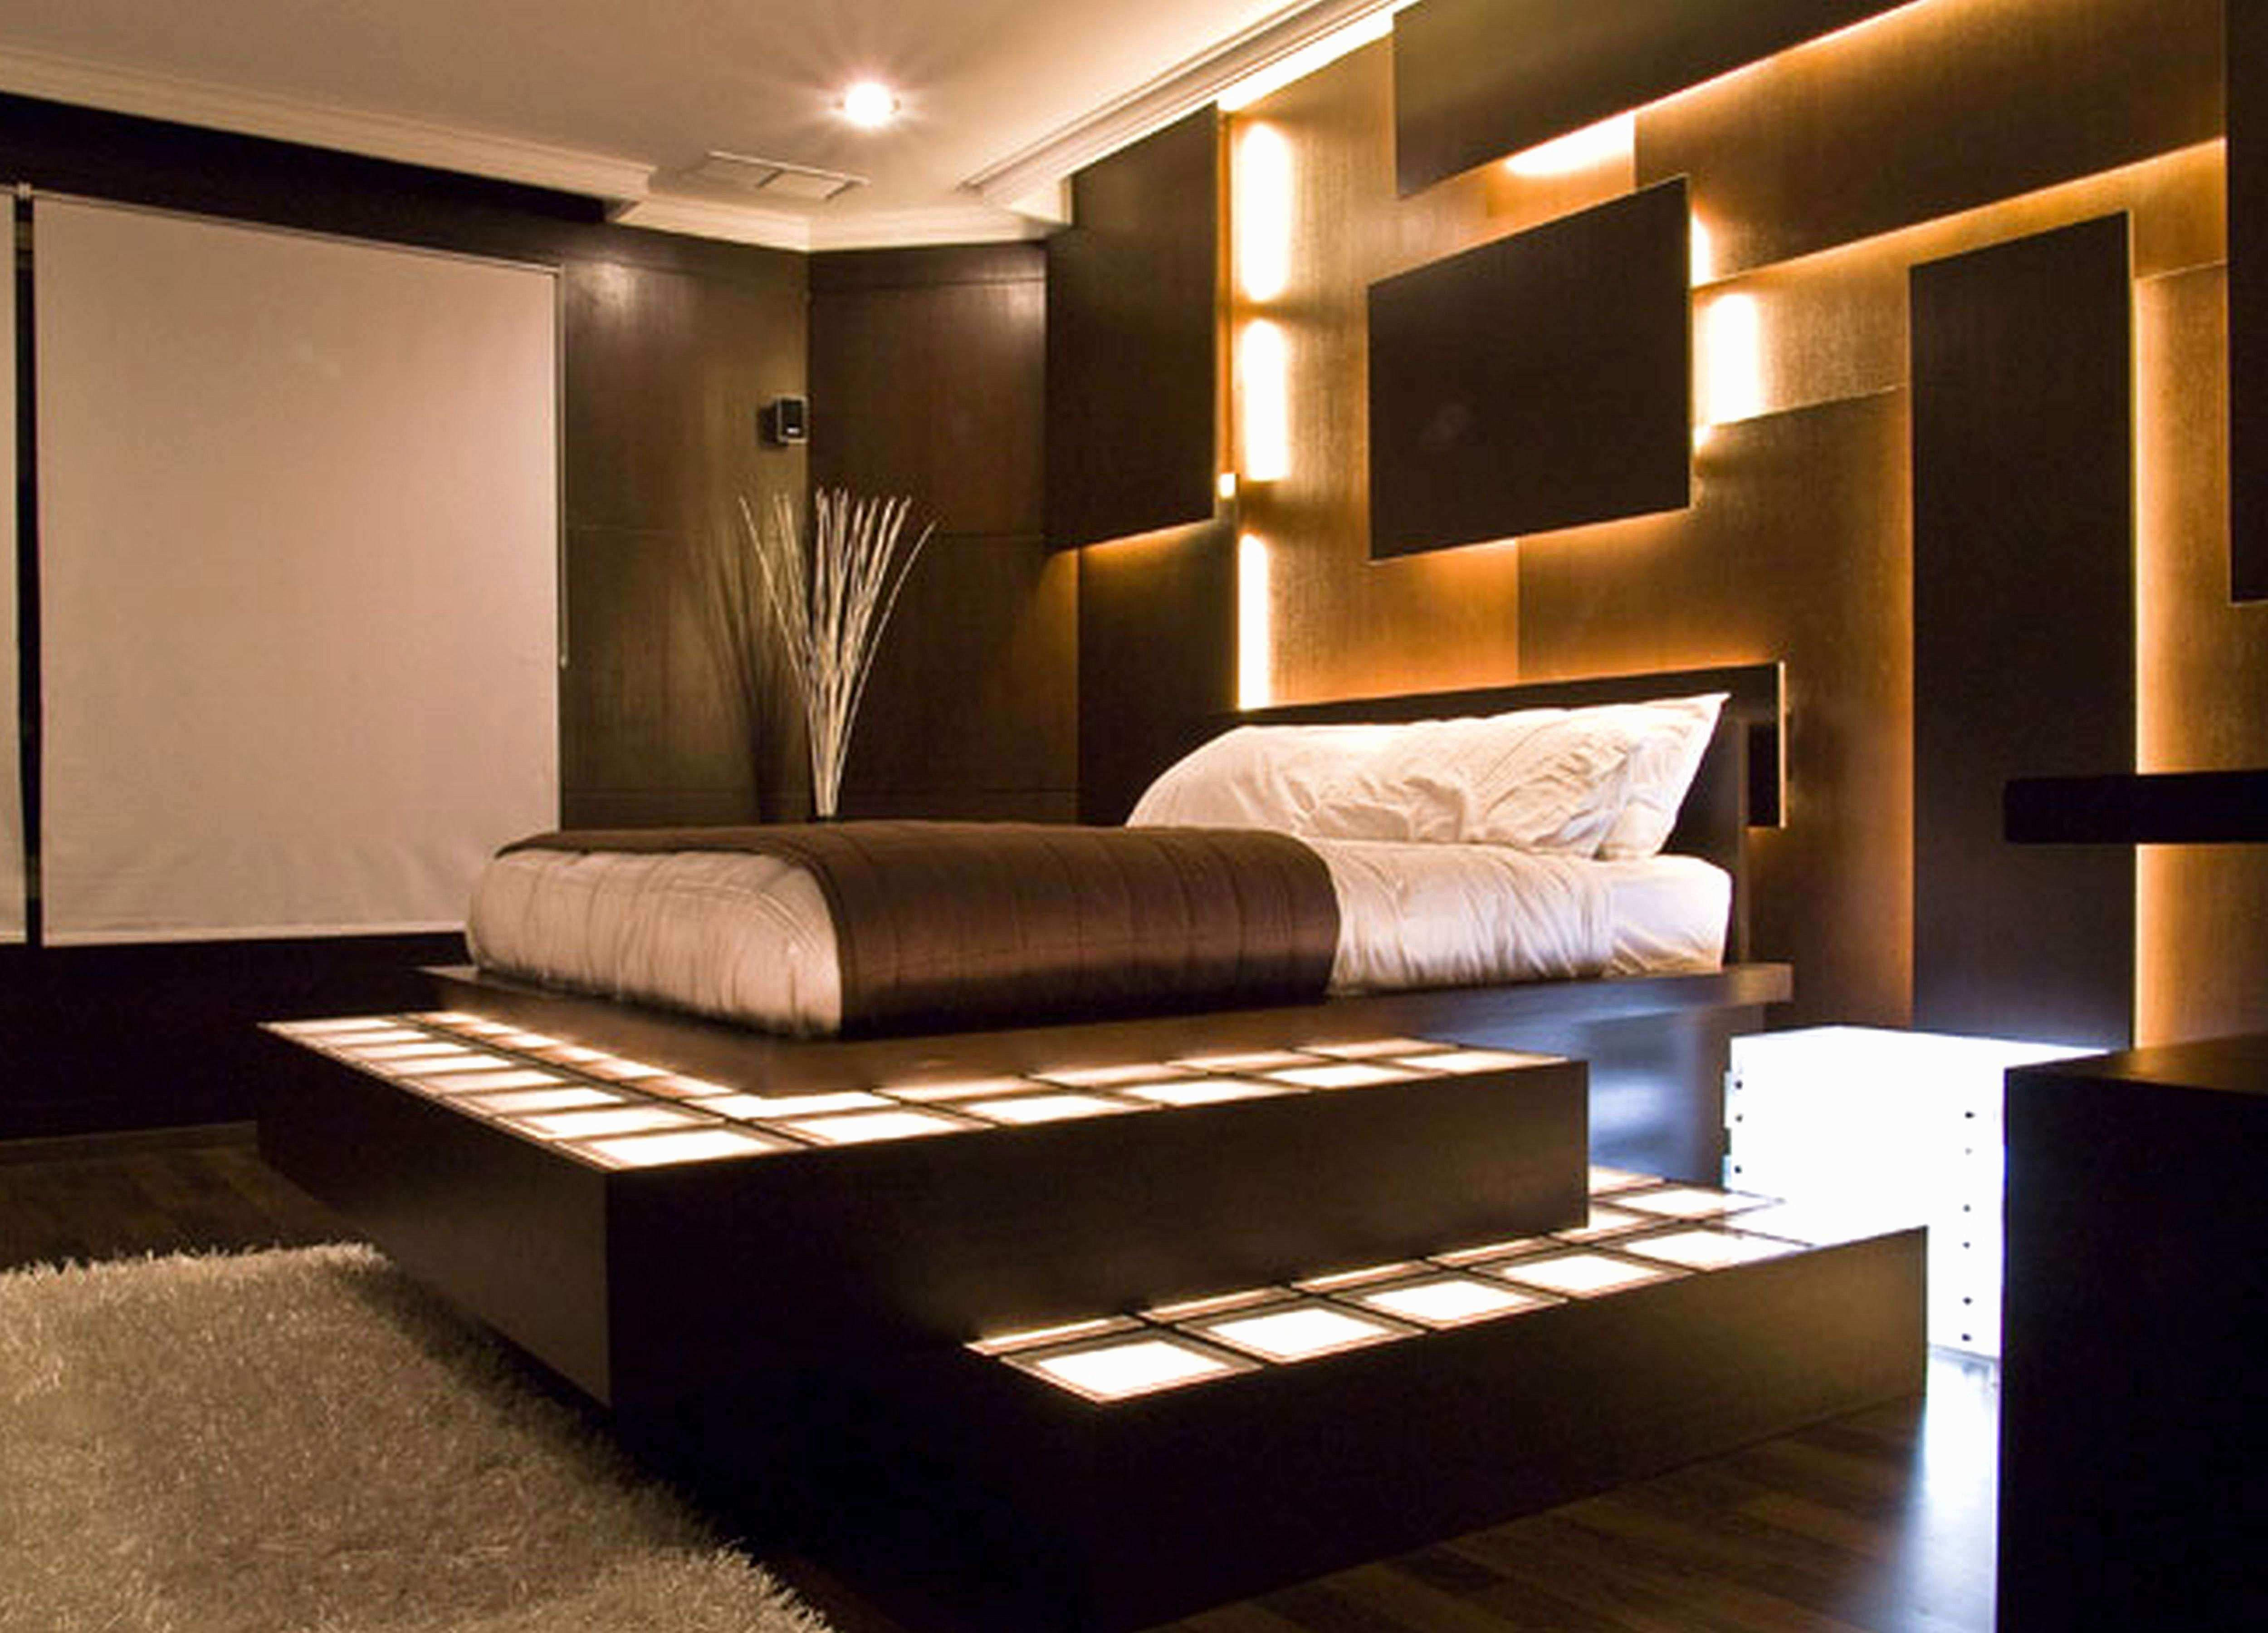 44 Awesome Wall Decorating Ideas for Living Room Gallery